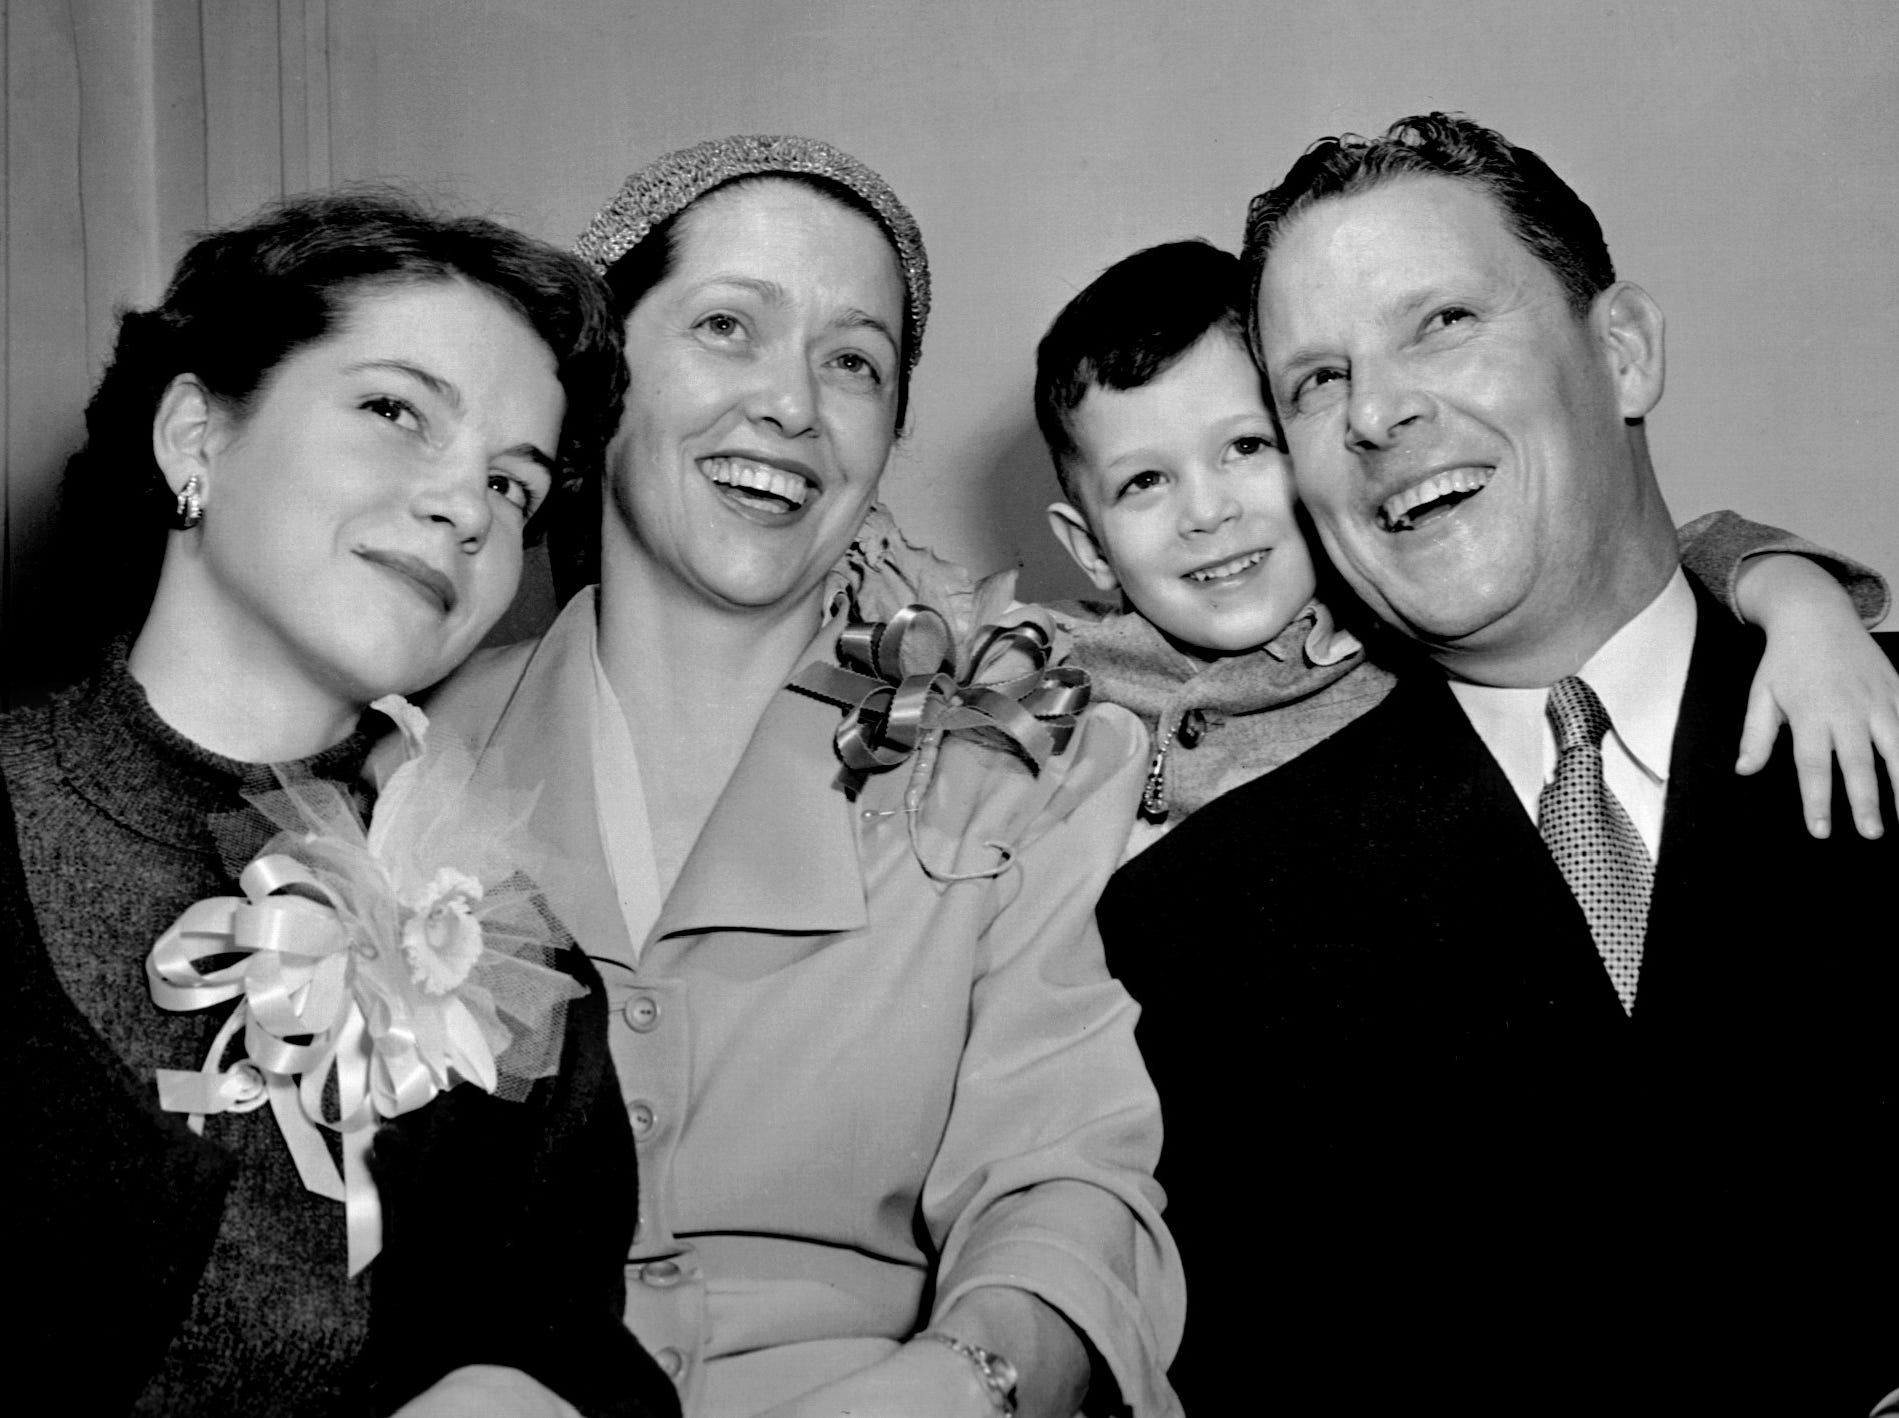 Rep. Al Gore announced his candidacy for the U.S. Senate on air at WMCT-TV in Memphis Saturday evening, February 2, 1952. Mrs. Gore and their two children, Nancy, 14, and Albert, 3, were there for the announcement. Gore, a Democrat, served as a U. S. Representative for Tennessee from 1939 through 1952 and senator from 1953-1970.